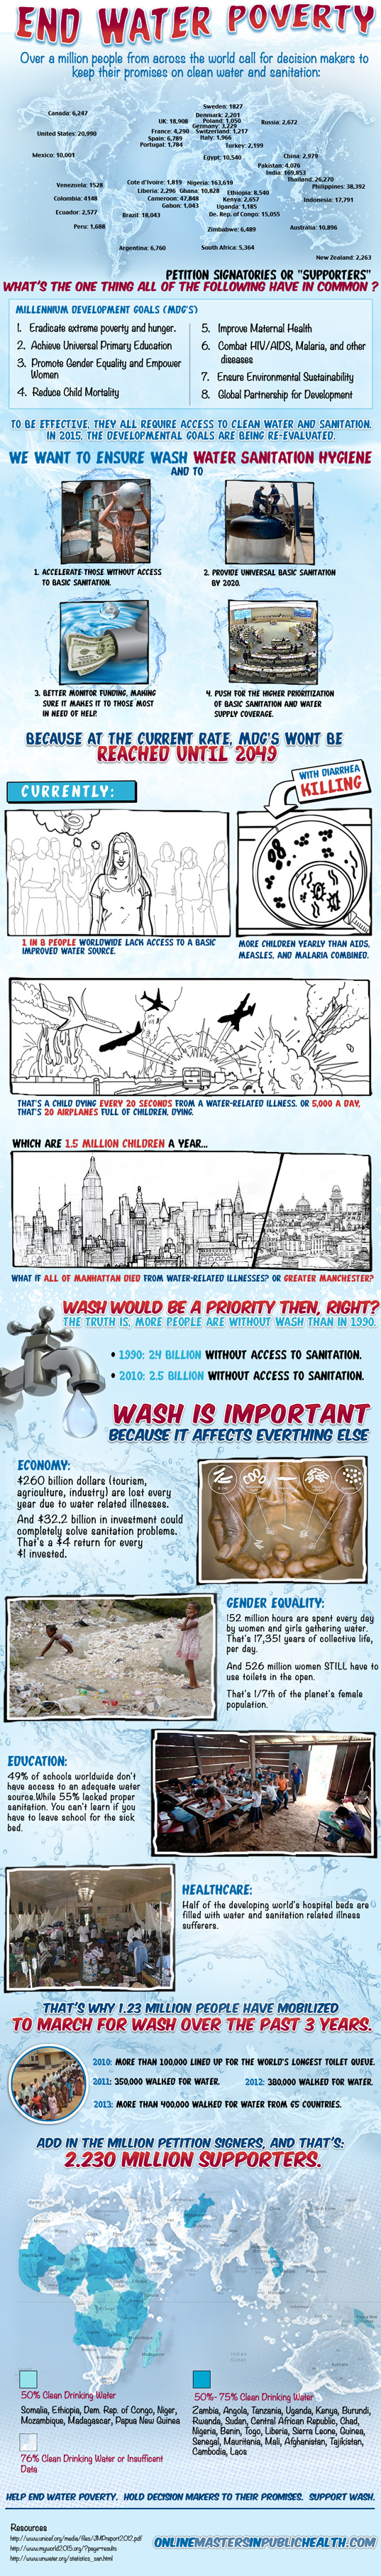 water poverty, infographic, water, water issues, global development, sustainable design, green design